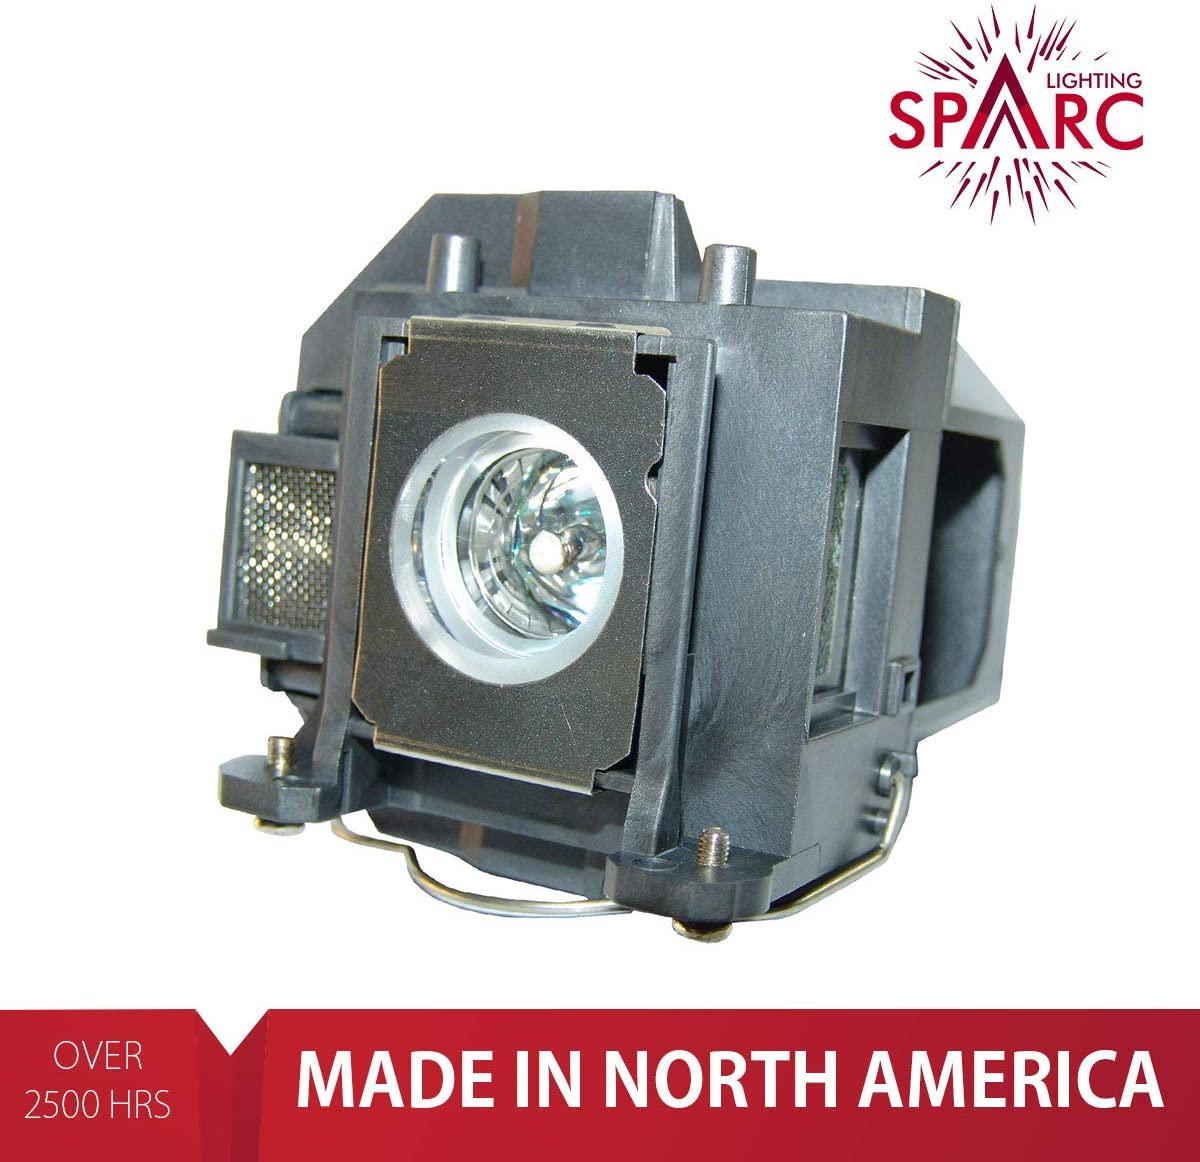 SpArc Lighting for Epson ELPLP57 V13H010L57 Projector Lamp with Enclosure fits BrightLink 450Wi 455Wi PowerLite 450W PowerLite 460 EB-440W EB-450W EB-460 EB-465i H318A H343A